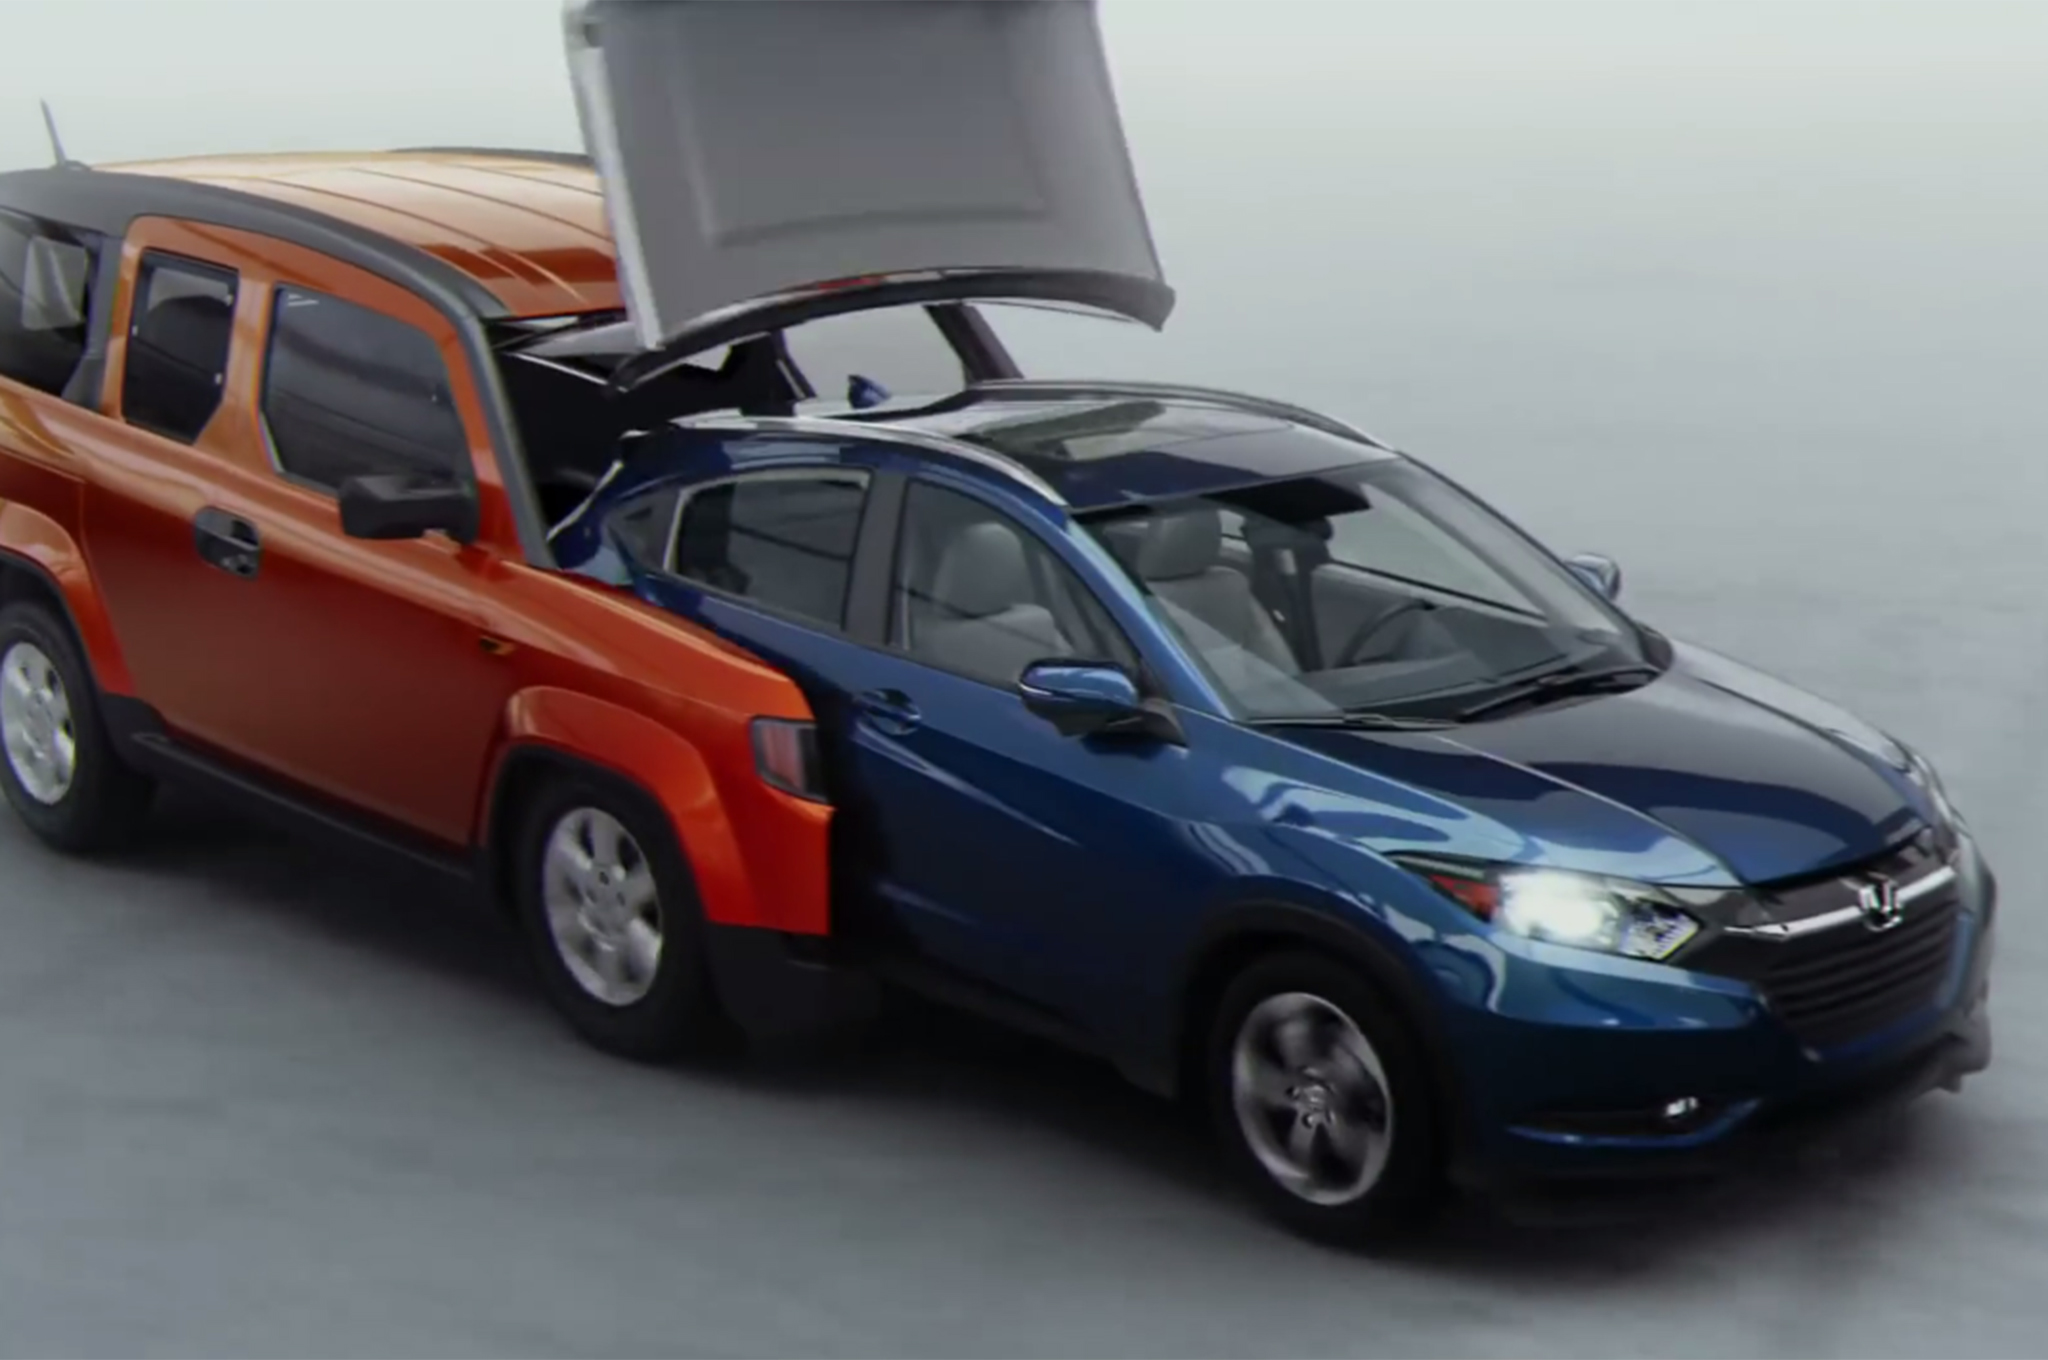 2016 Honda HR-V Ad Features 7 Hondas from the Past